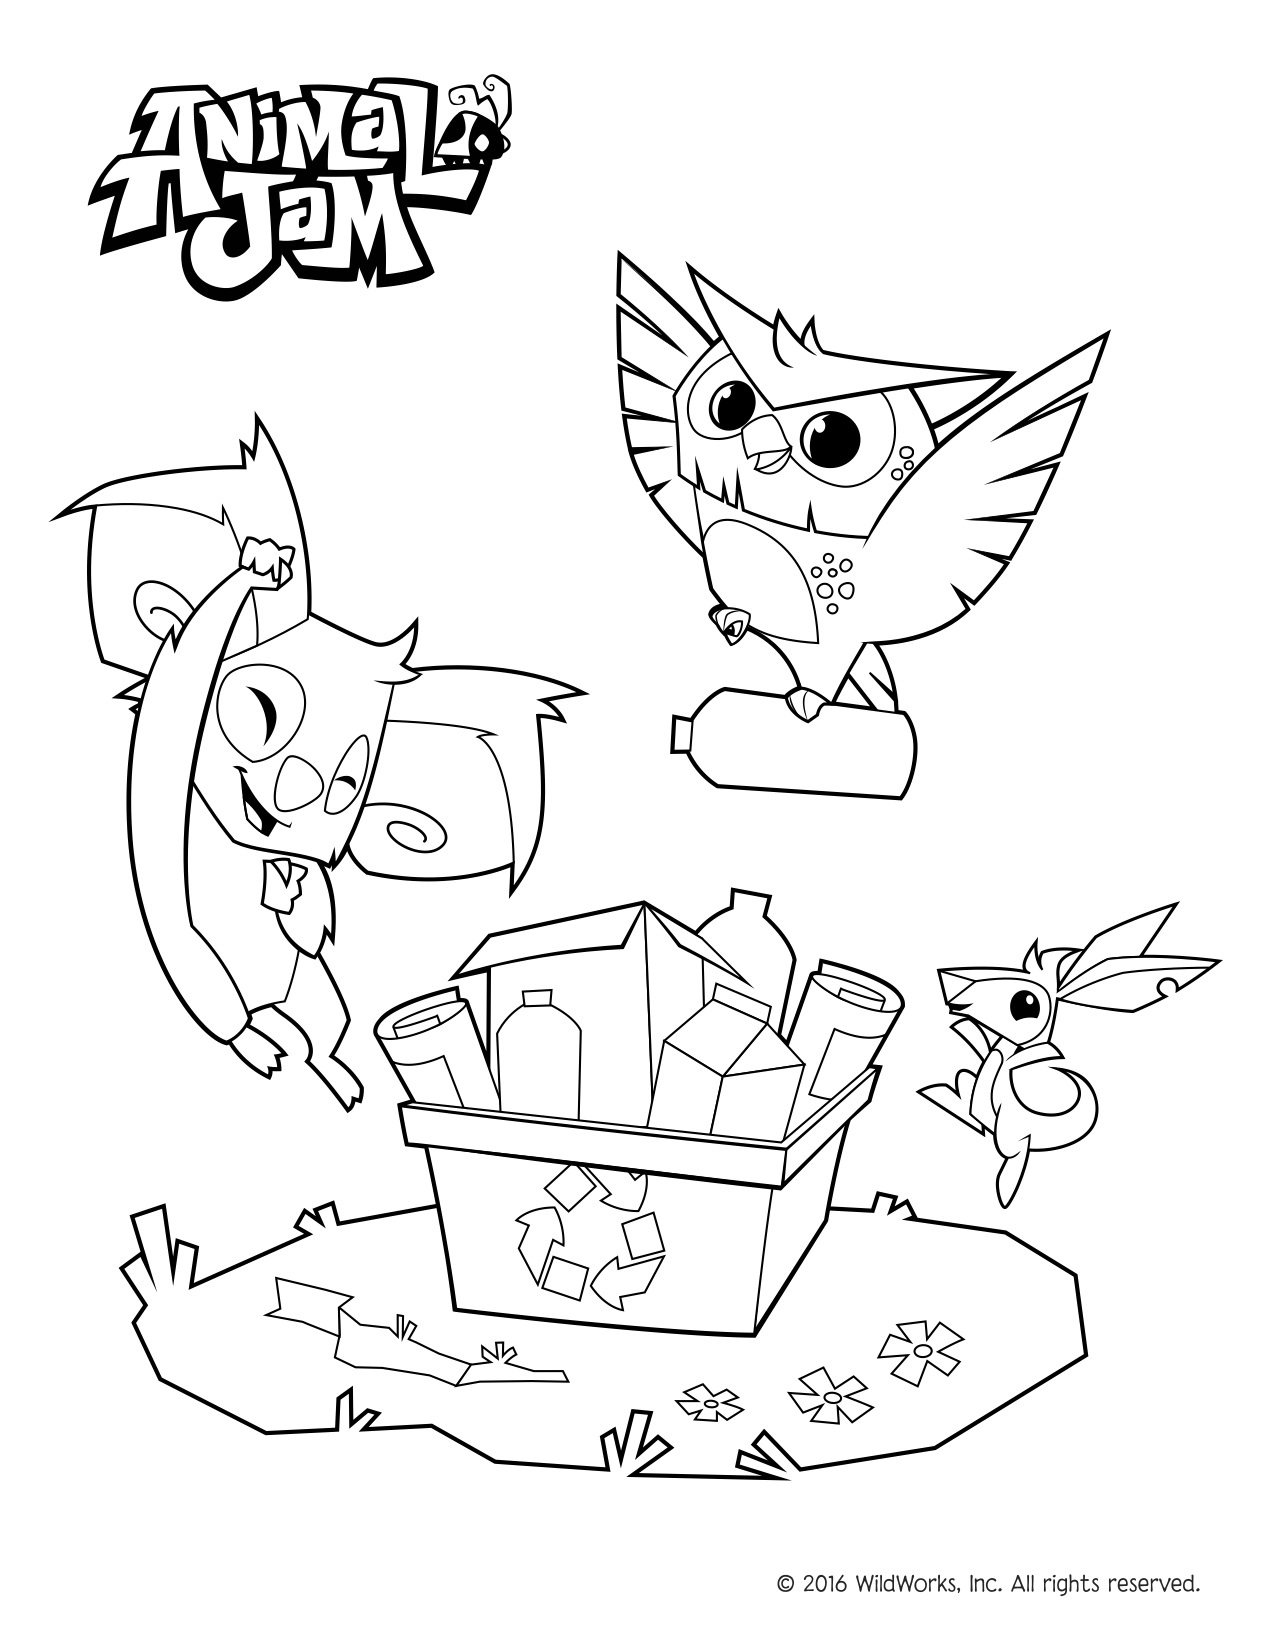 Environment Coloring Pages At Getcolorings